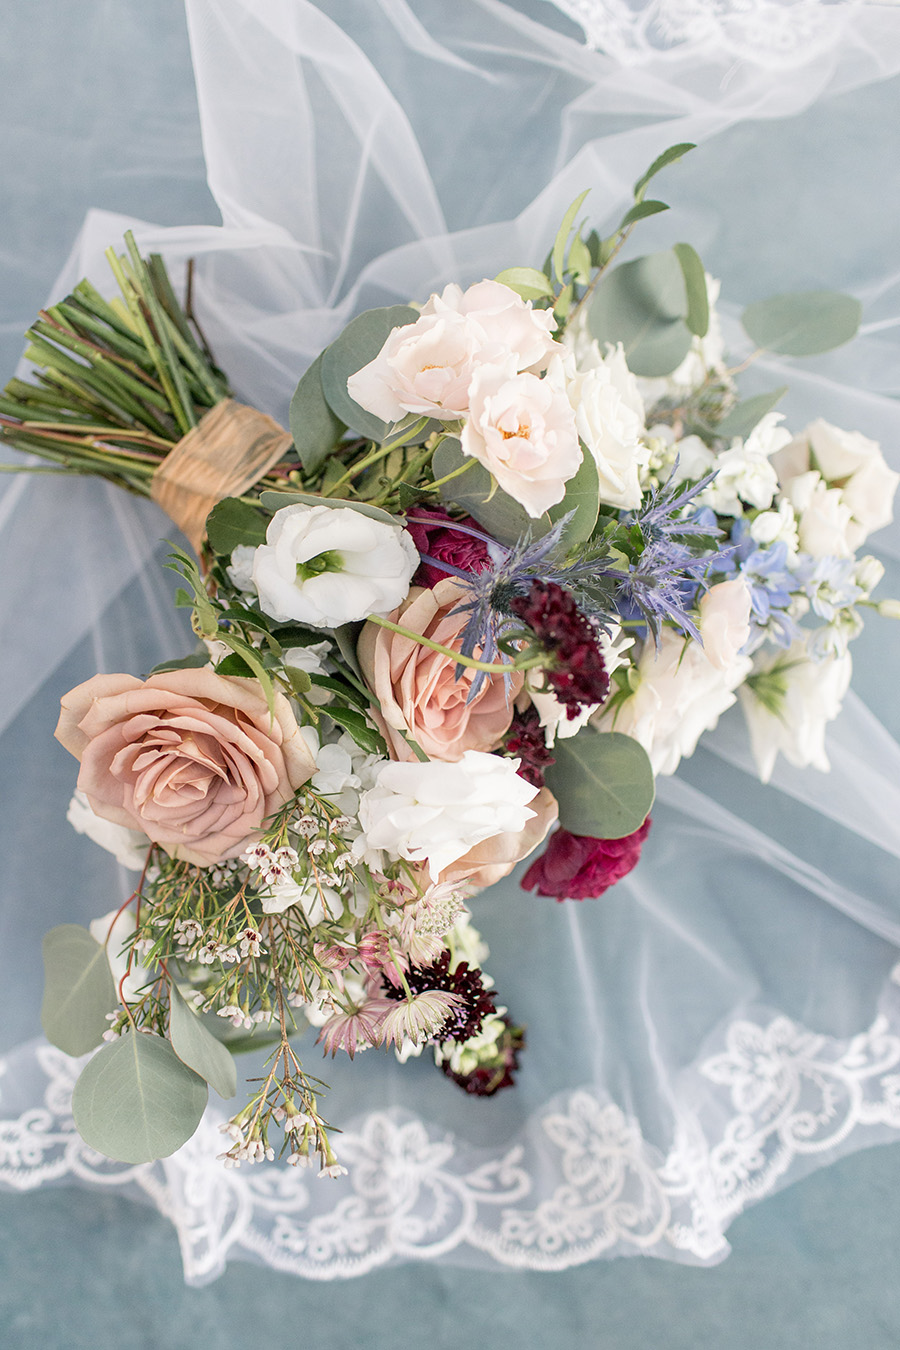 Bride's berry and blush wedding bouquet